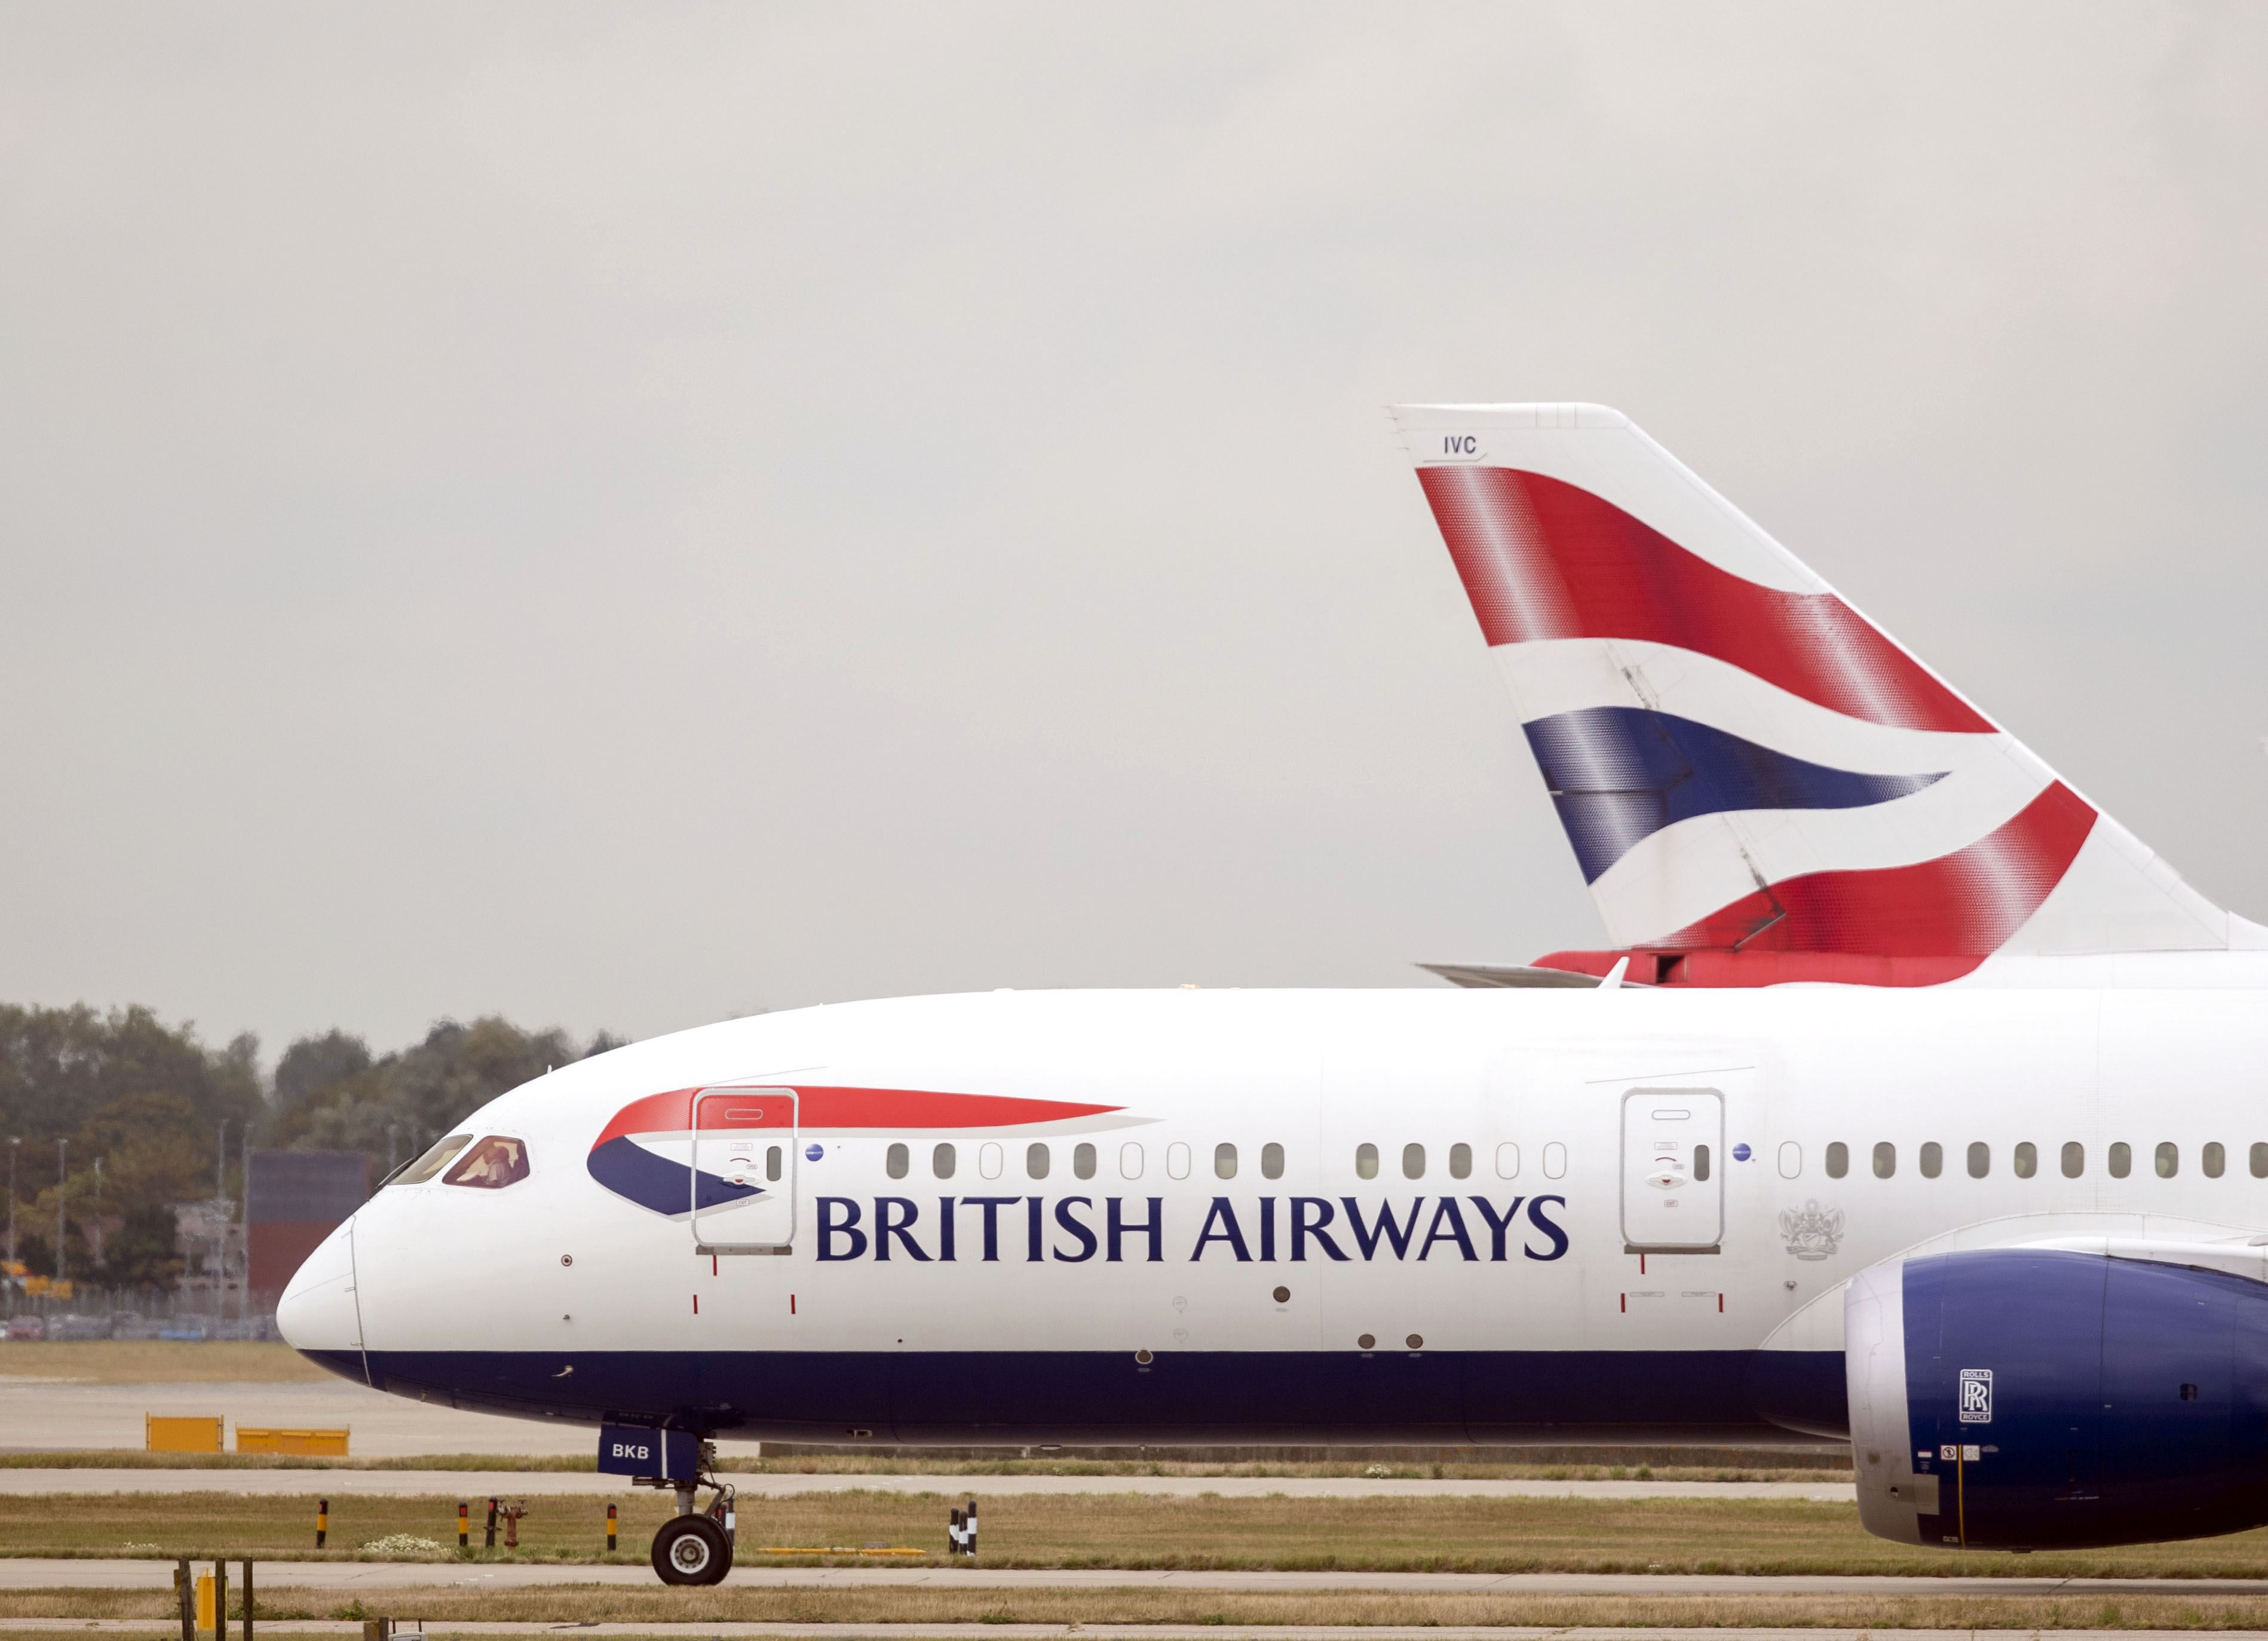 zeci-de-avioane-british-airways-